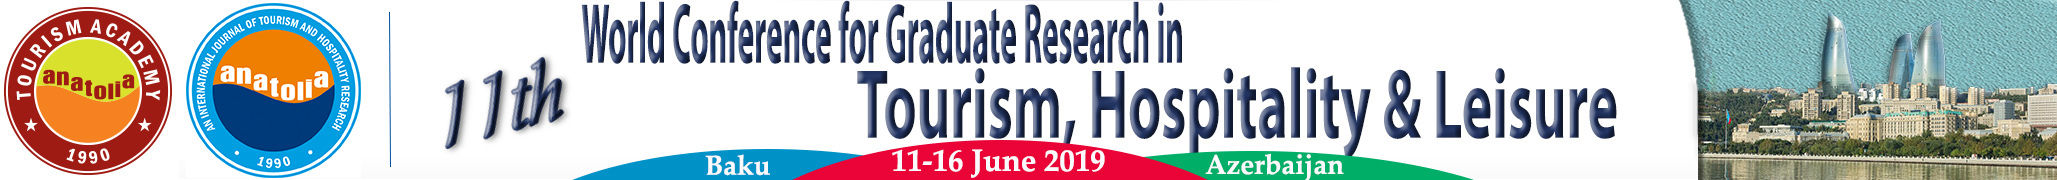 World Conference for Graduate Research in Tourism